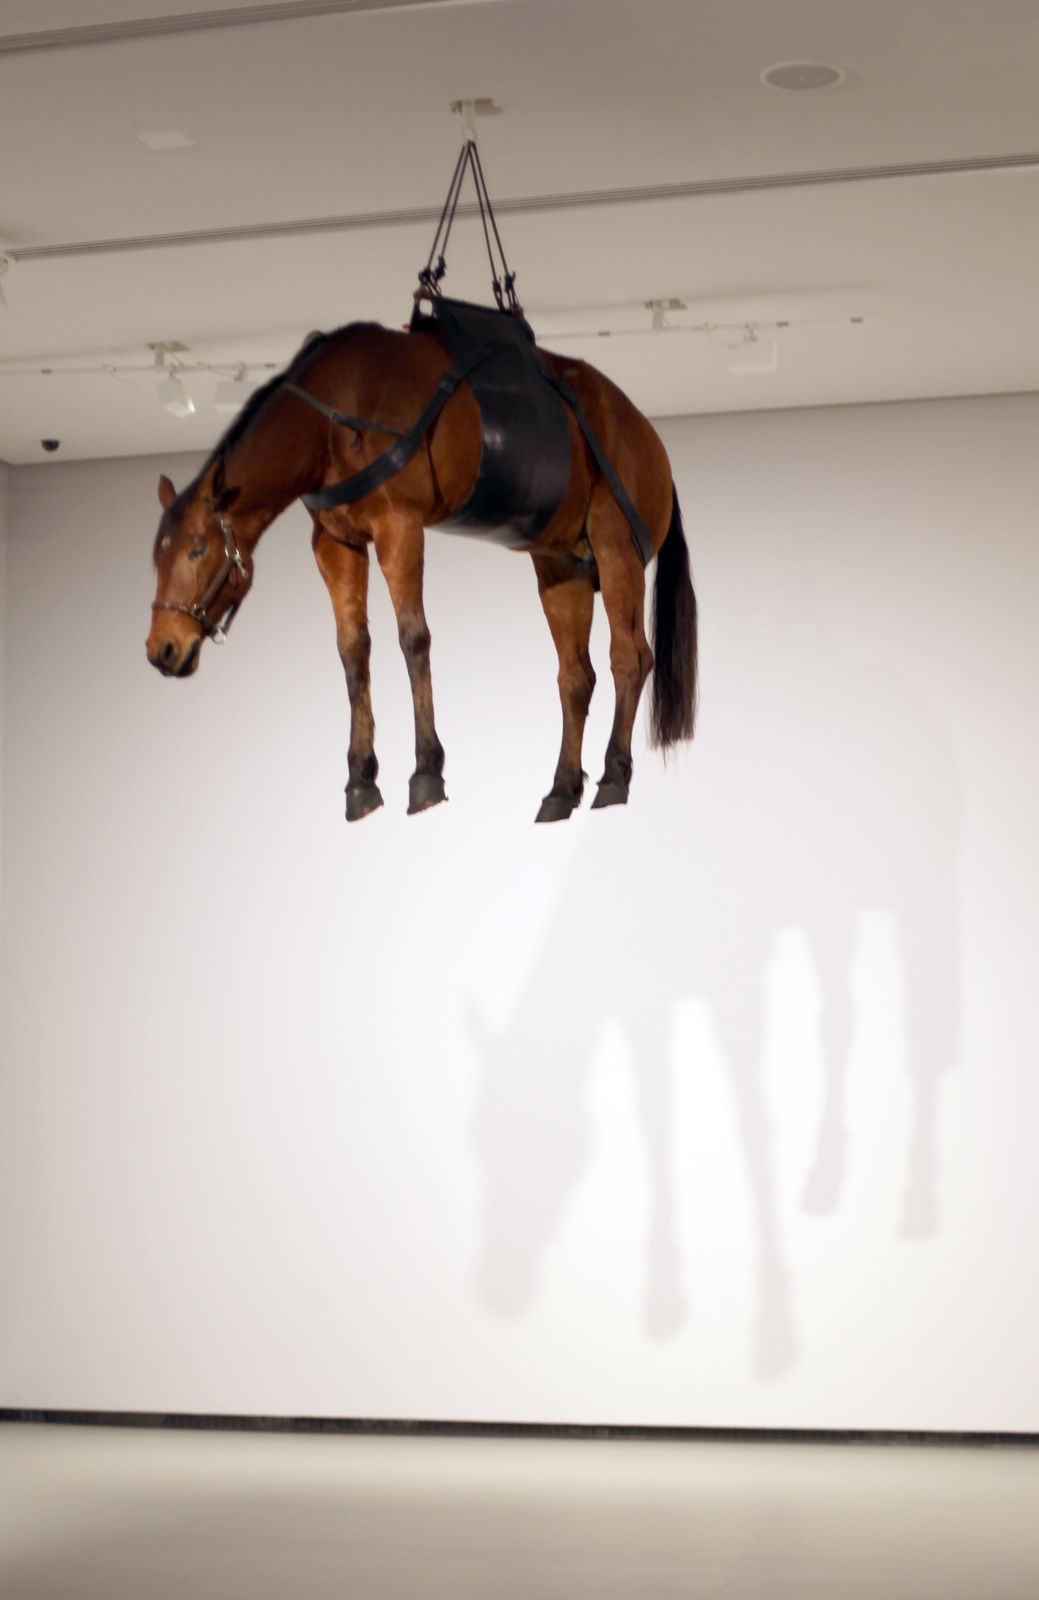 """La ballade de Trotski"", 1996 de Maurizio CATTELAN - Courtesy FONDATION LOUIS VUITTON © Photo Éric Simon"